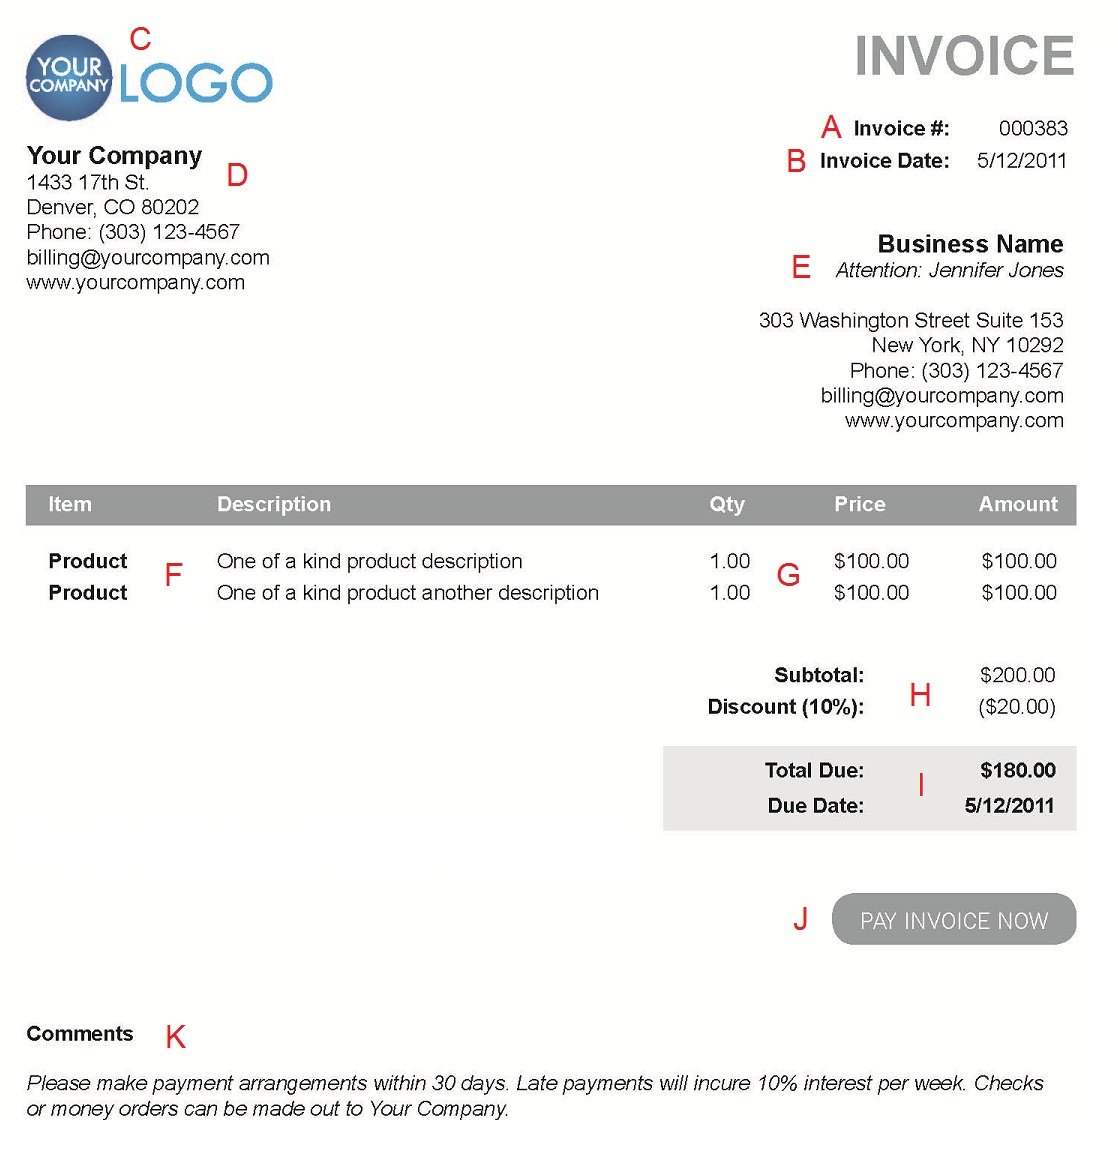 Coolmathgamesus  Outstanding The  Different Sections Of An Electronic Payment Invoice With Fascinating A  With Delectable Refund Receipt Also Receipt Of Acknowledgement Letter In Addition Need Receipt From Walmart And Westin Hotel Receipt As Well As Petsmart No Receipt Return Policy Additionally Medical Receipt Template Word From Paysimplecom With Coolmathgamesus  Fascinating The  Different Sections Of An Electronic Payment Invoice With Delectable A  And Outstanding Refund Receipt Also Receipt Of Acknowledgement Letter In Addition Need Receipt From Walmart From Paysimplecom